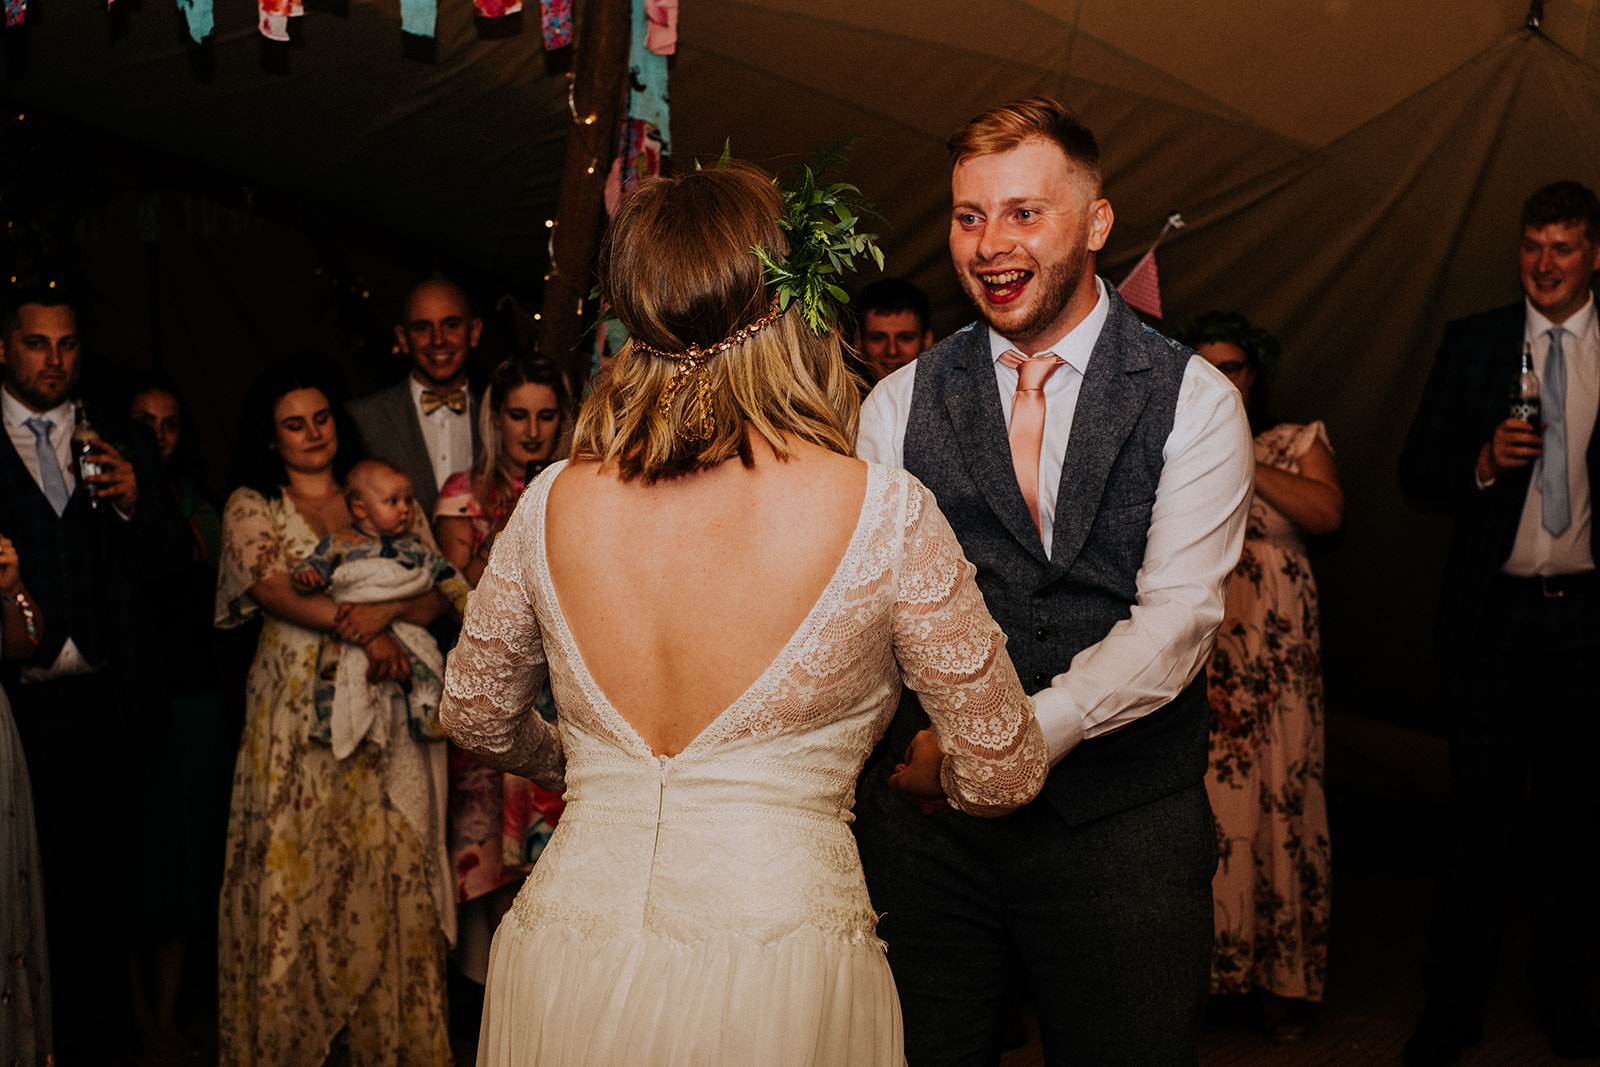 First Dance for Couple